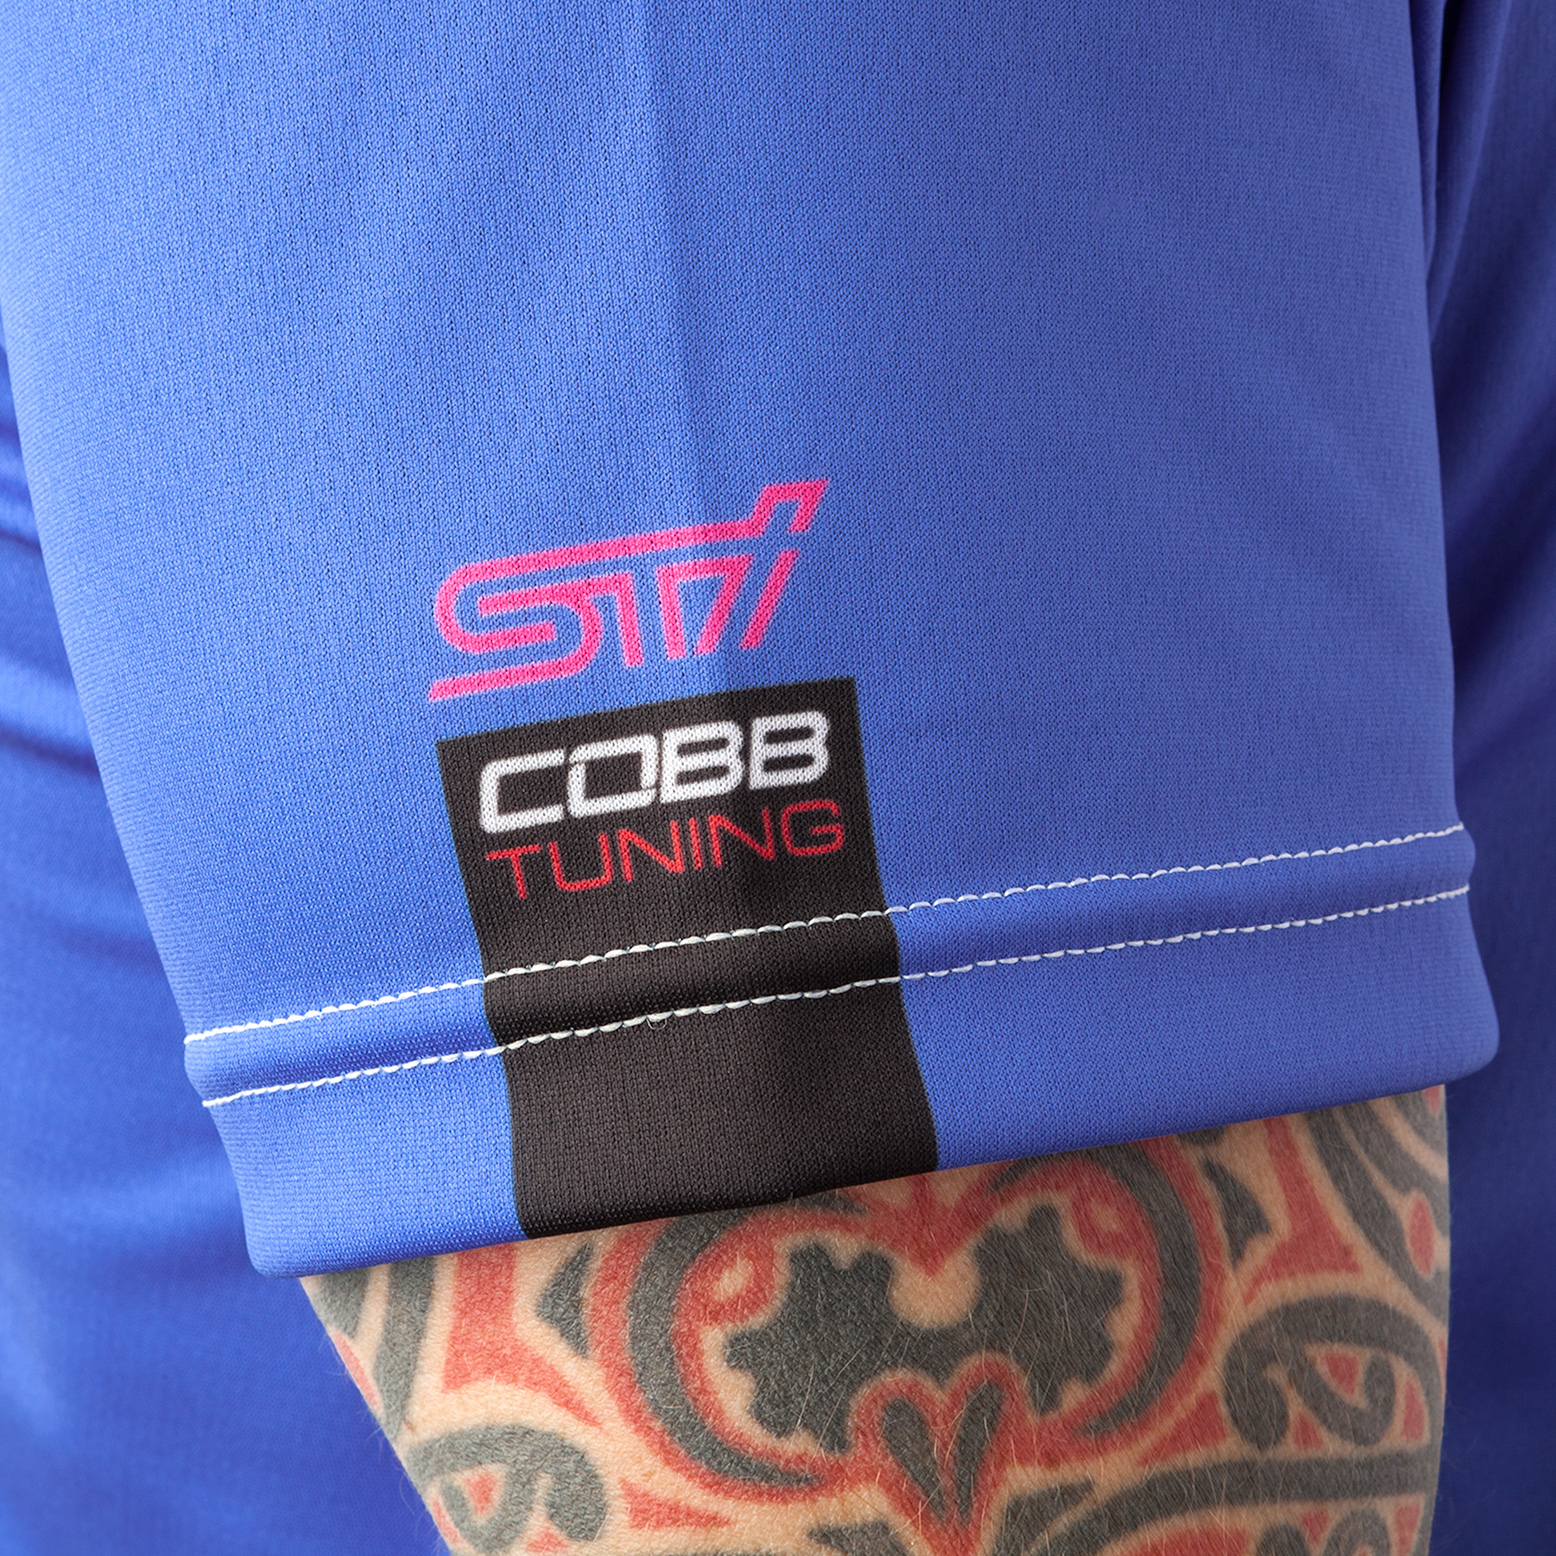 COBB Tuning Subaru Shirt